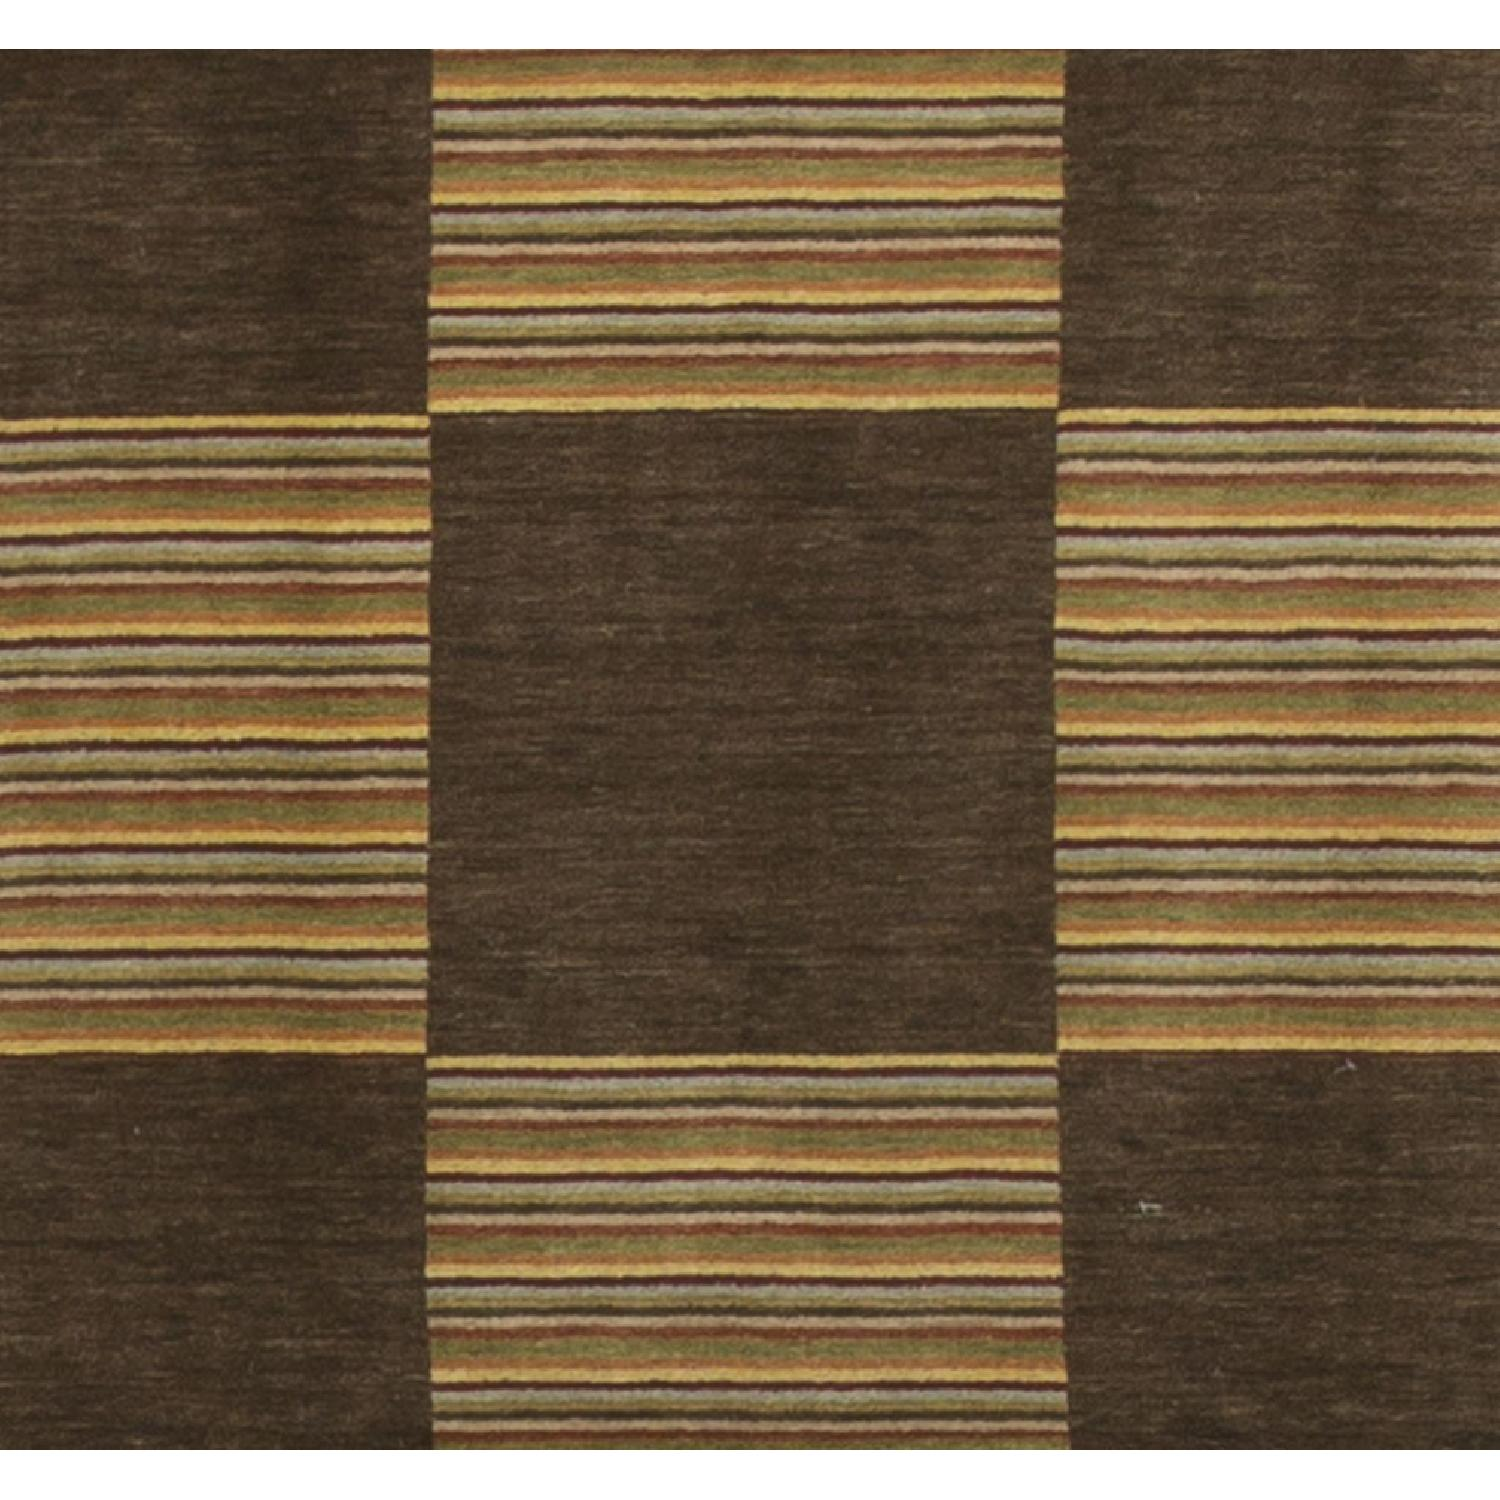 Modern Contemporary Hand Knotted Wool Rug in Brown/Beige - image-2